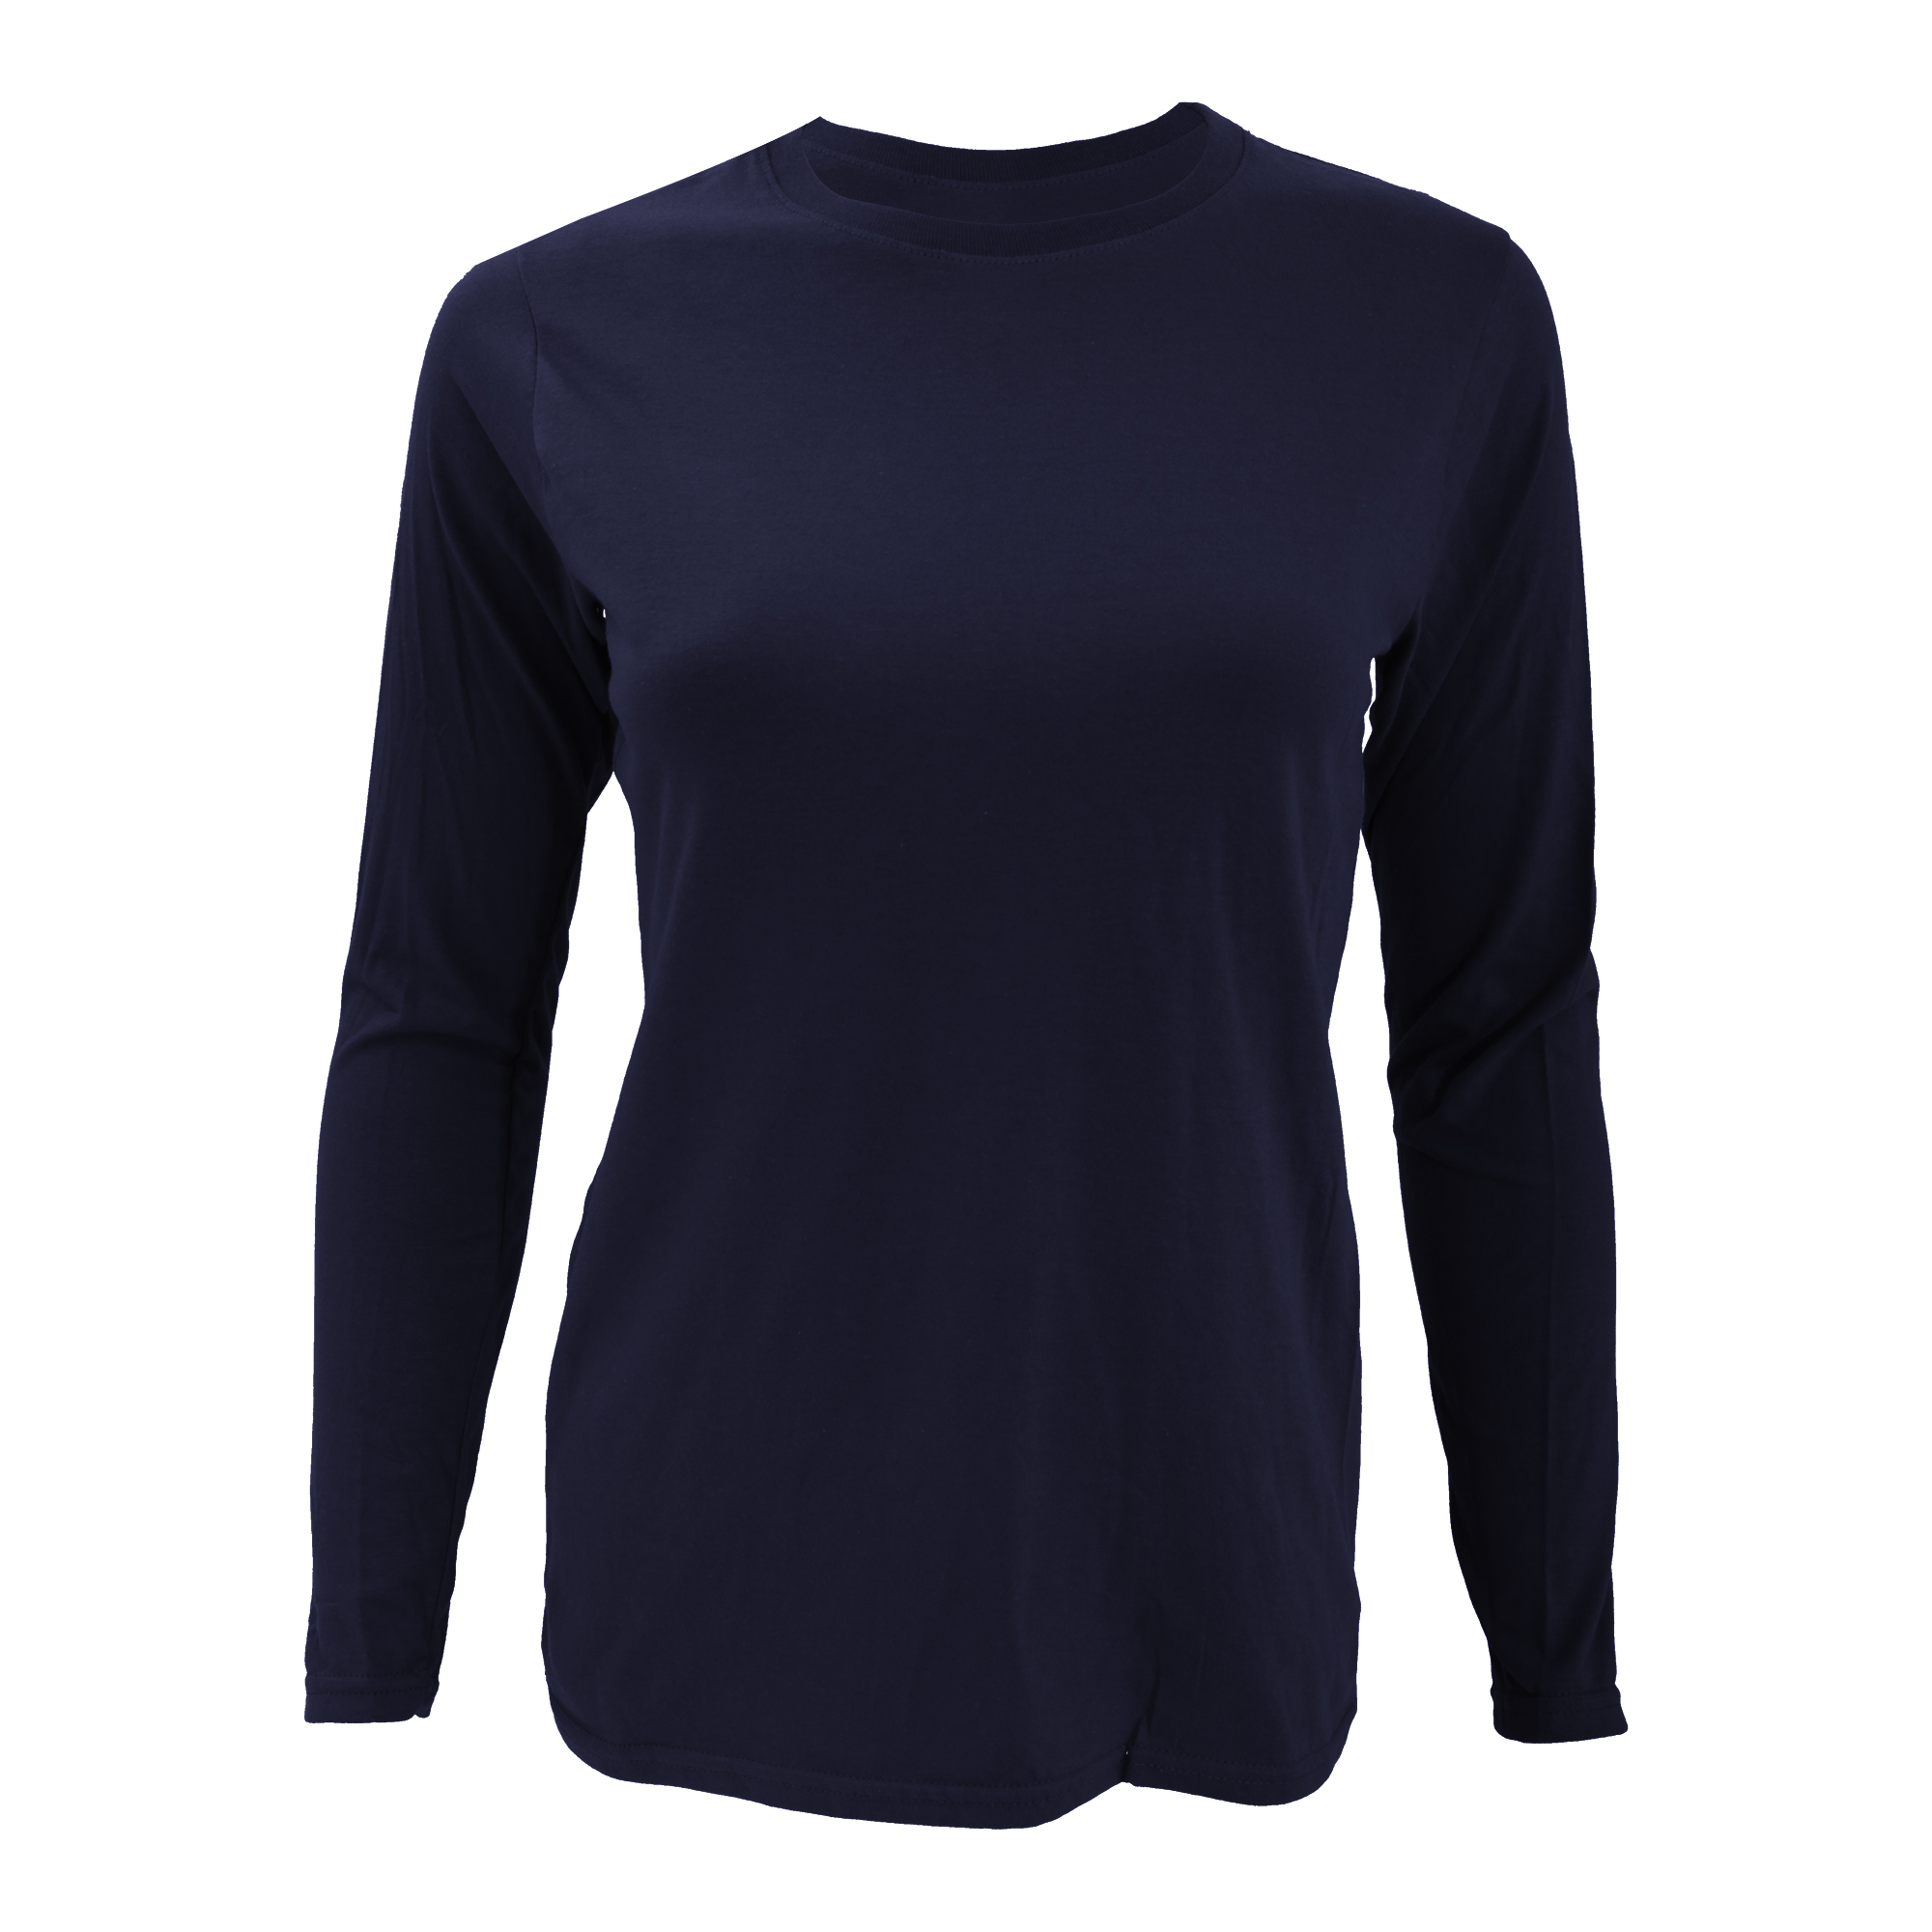 Anvil womens ladies fashion plain fitted long sleeve t for Ladies long sleeve shirt